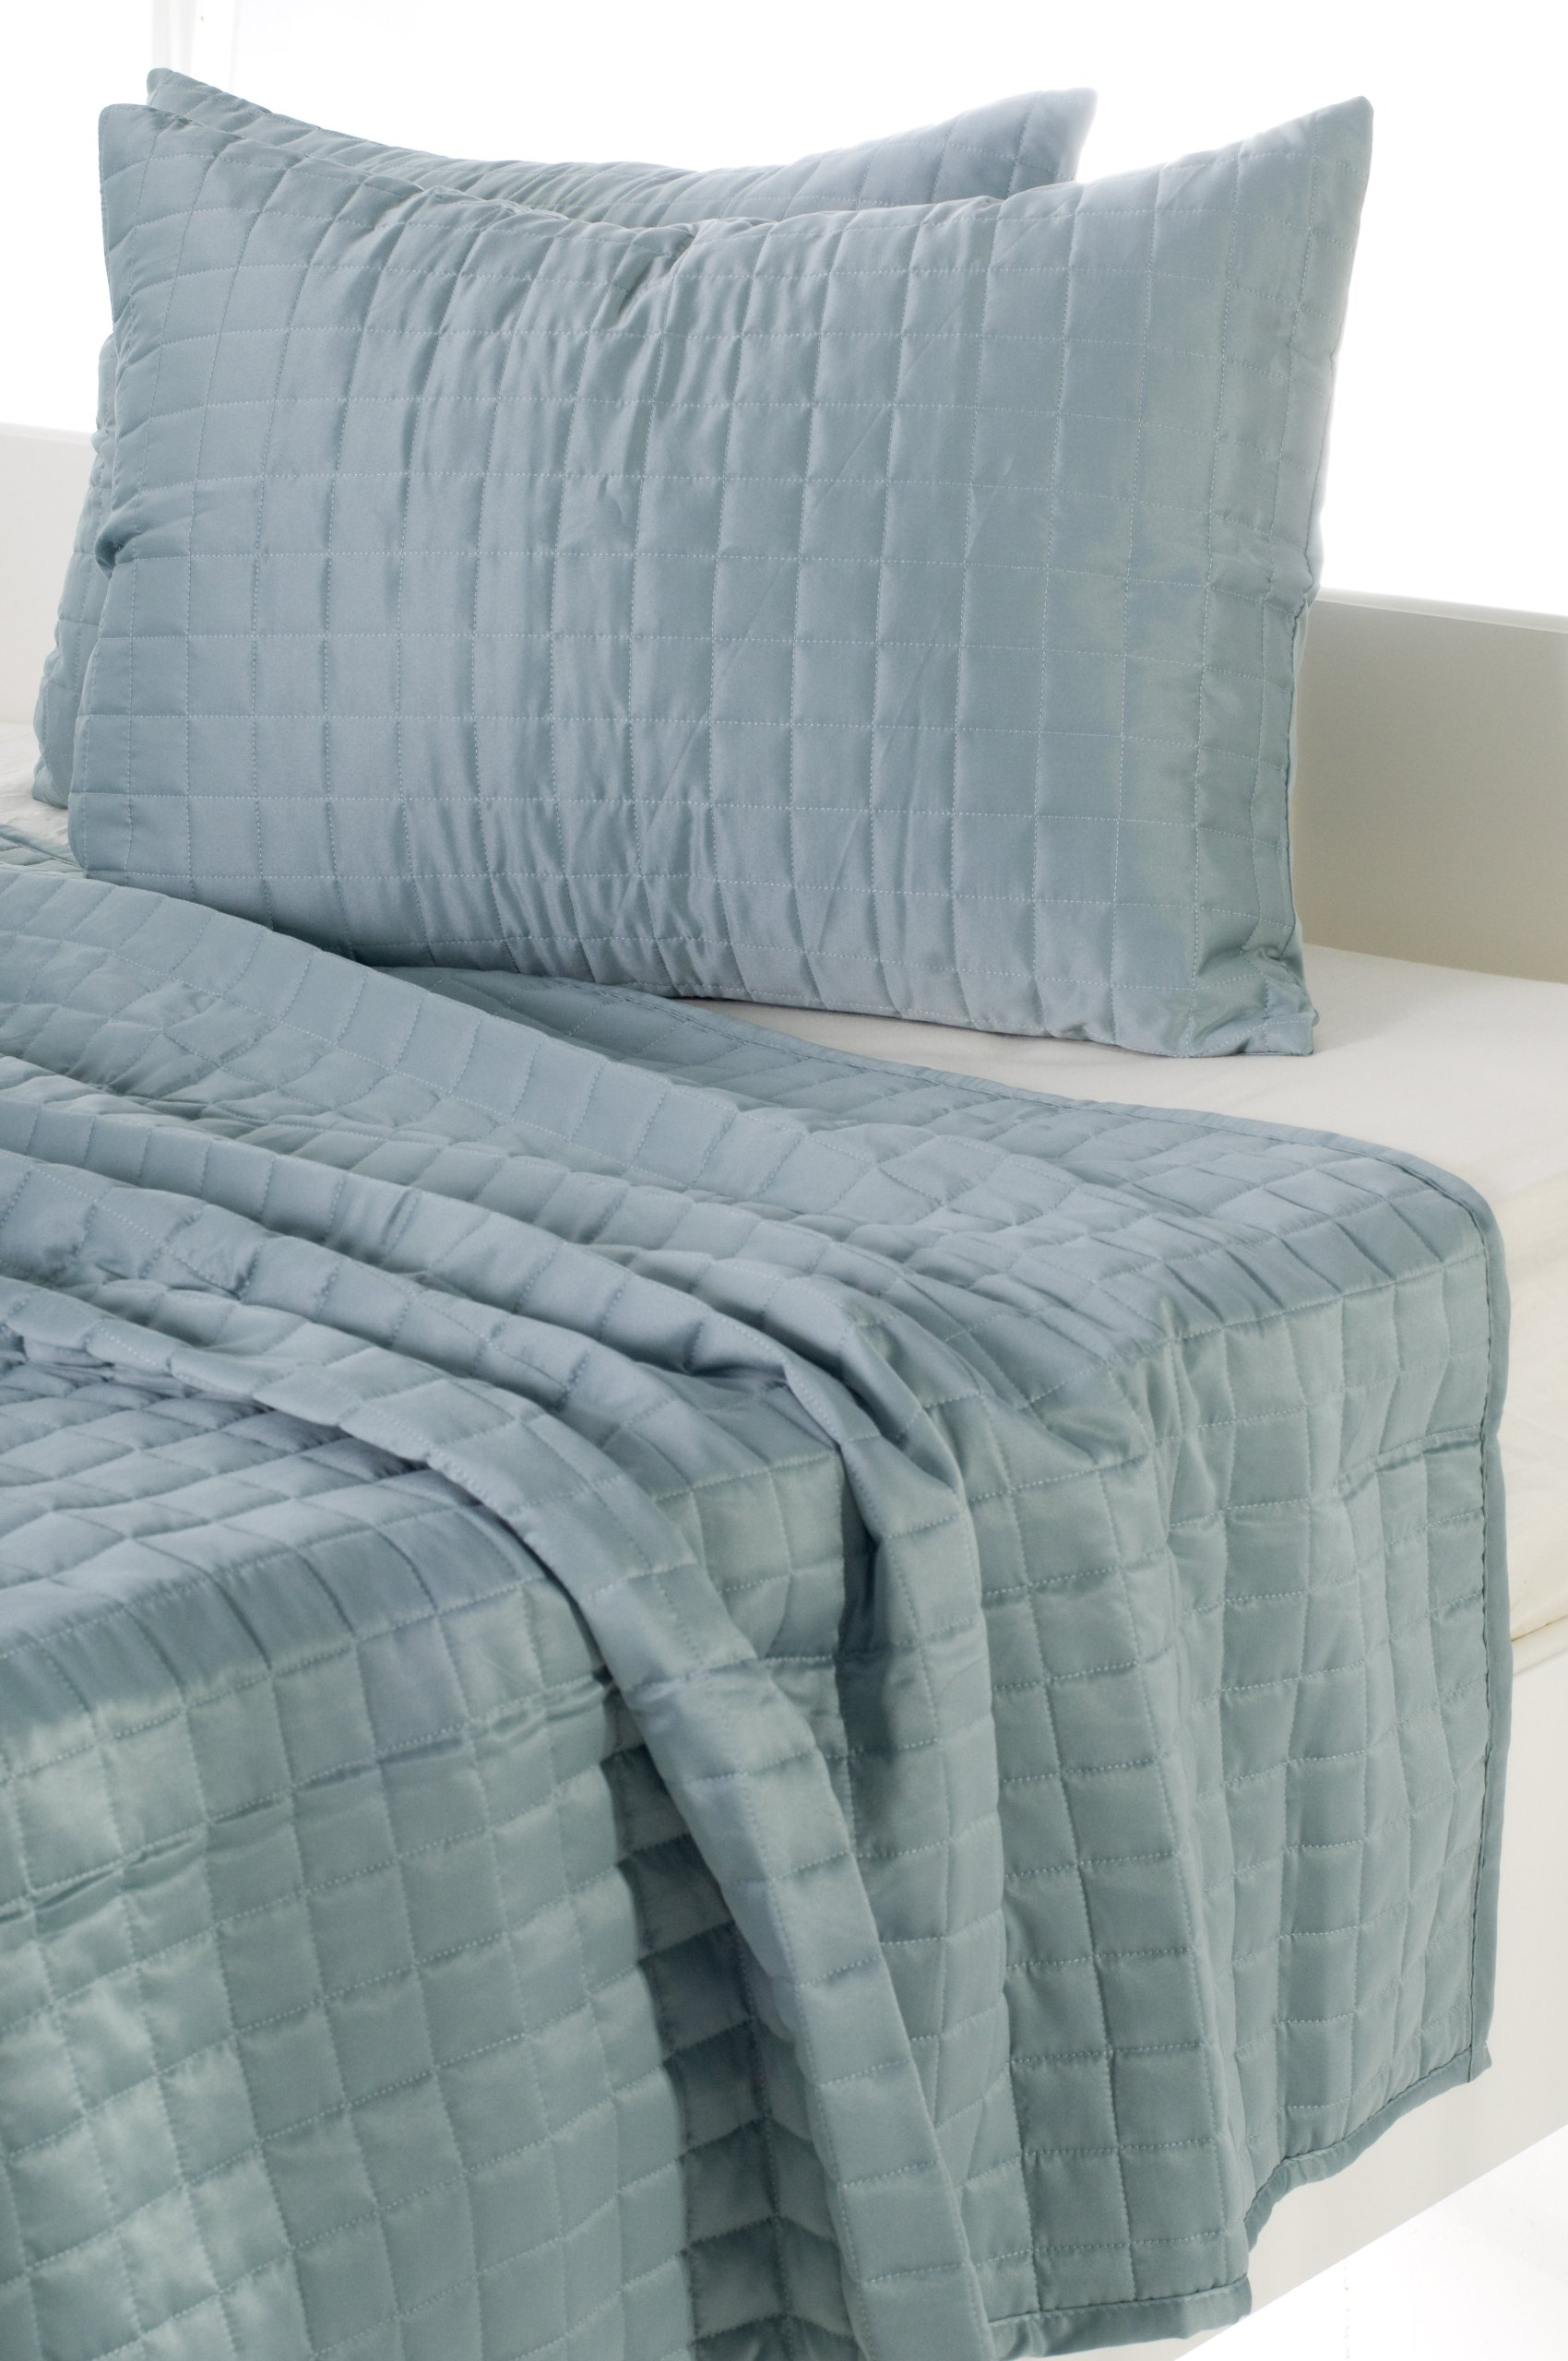 Rizzy Home Spa 3-Piece Quilted Bed Set, Queen